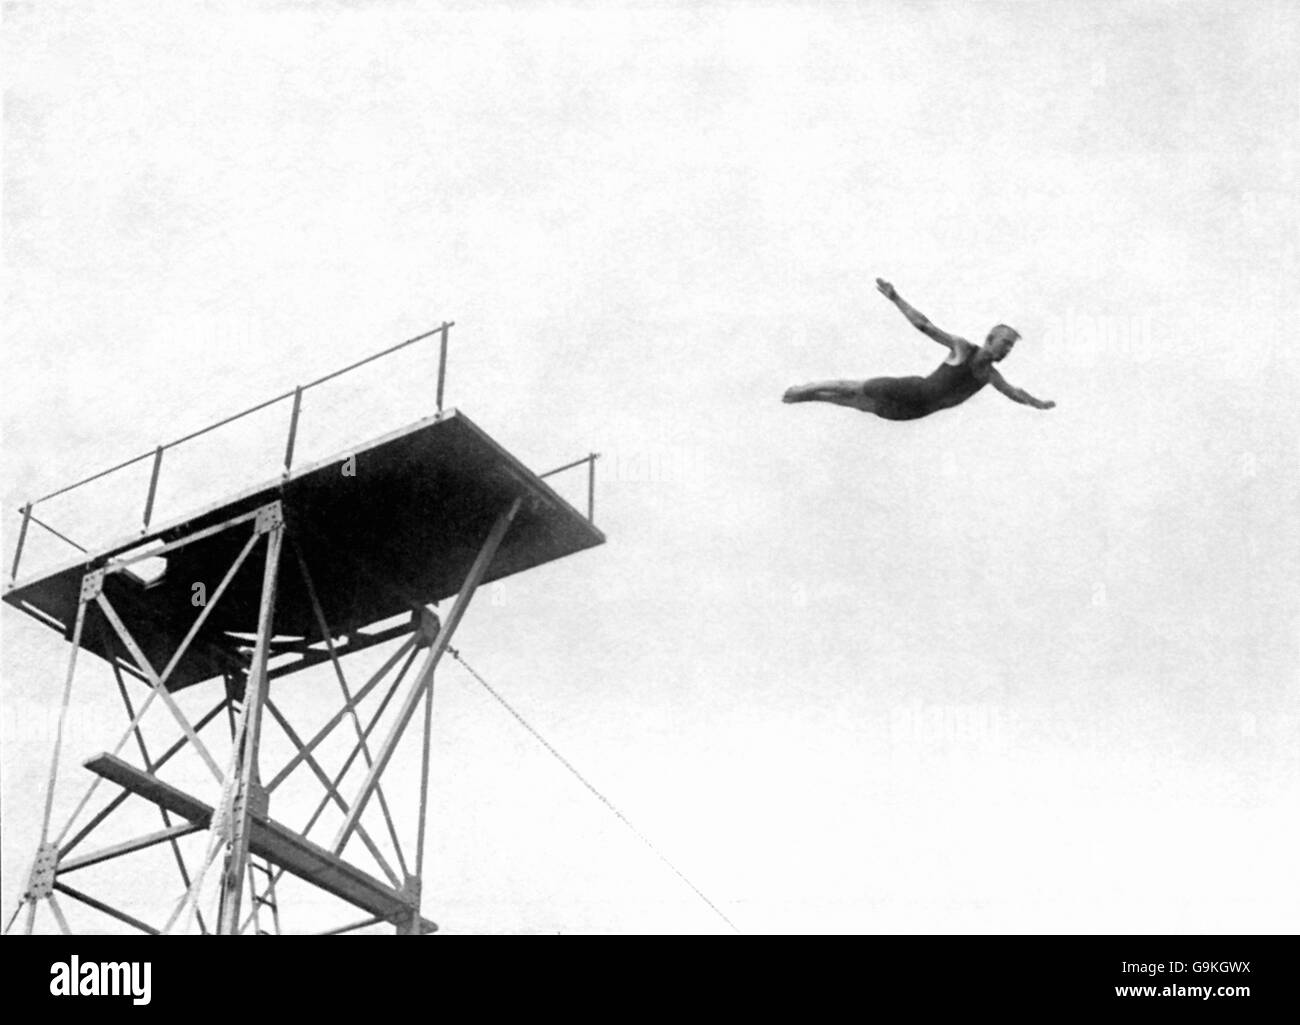 Diving - London Olympic Games 1908 - Highboard - White City - Stock Image